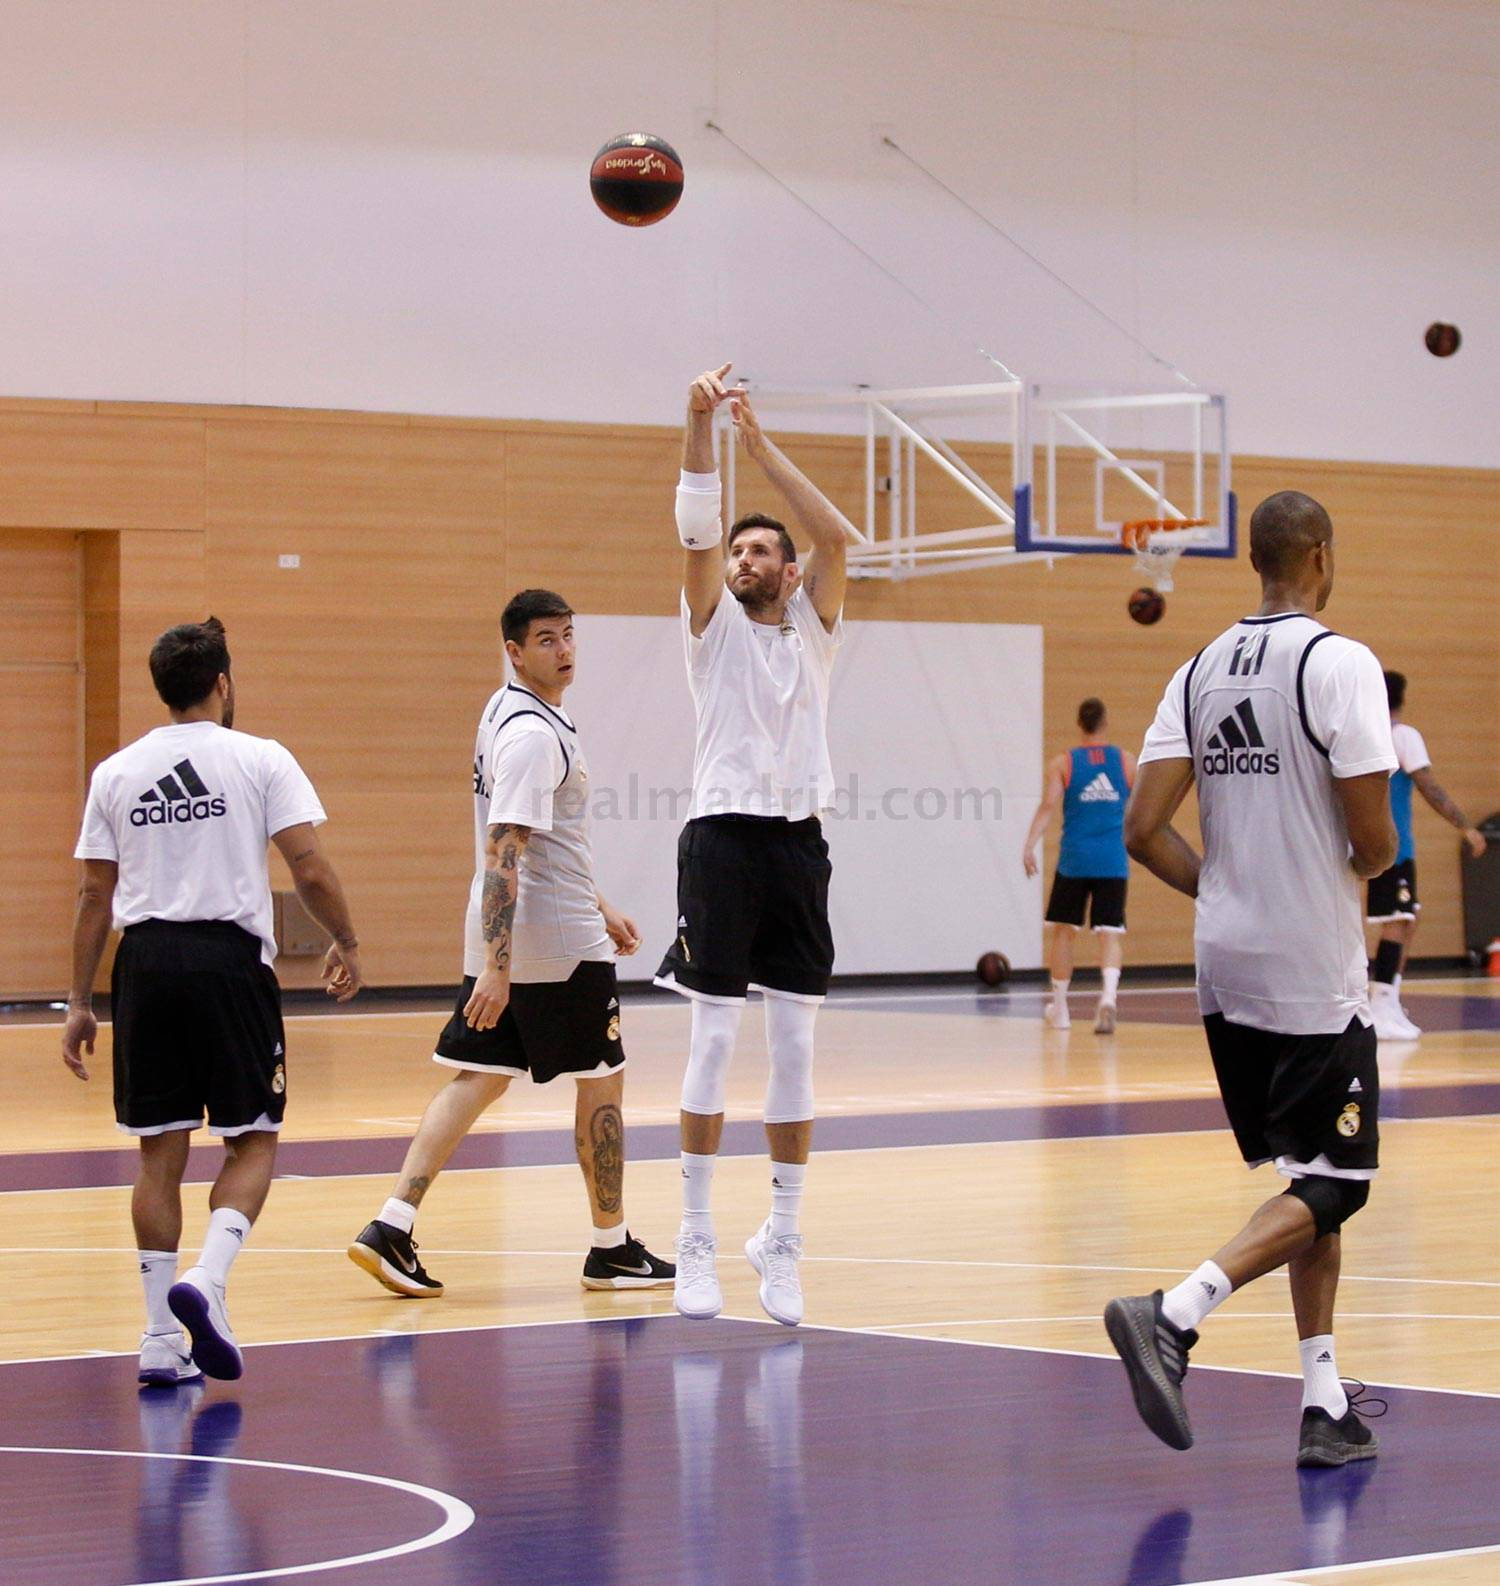 Real Madrid - Entrenamiento del Real Madrid de baloncesto - 27-08-2018